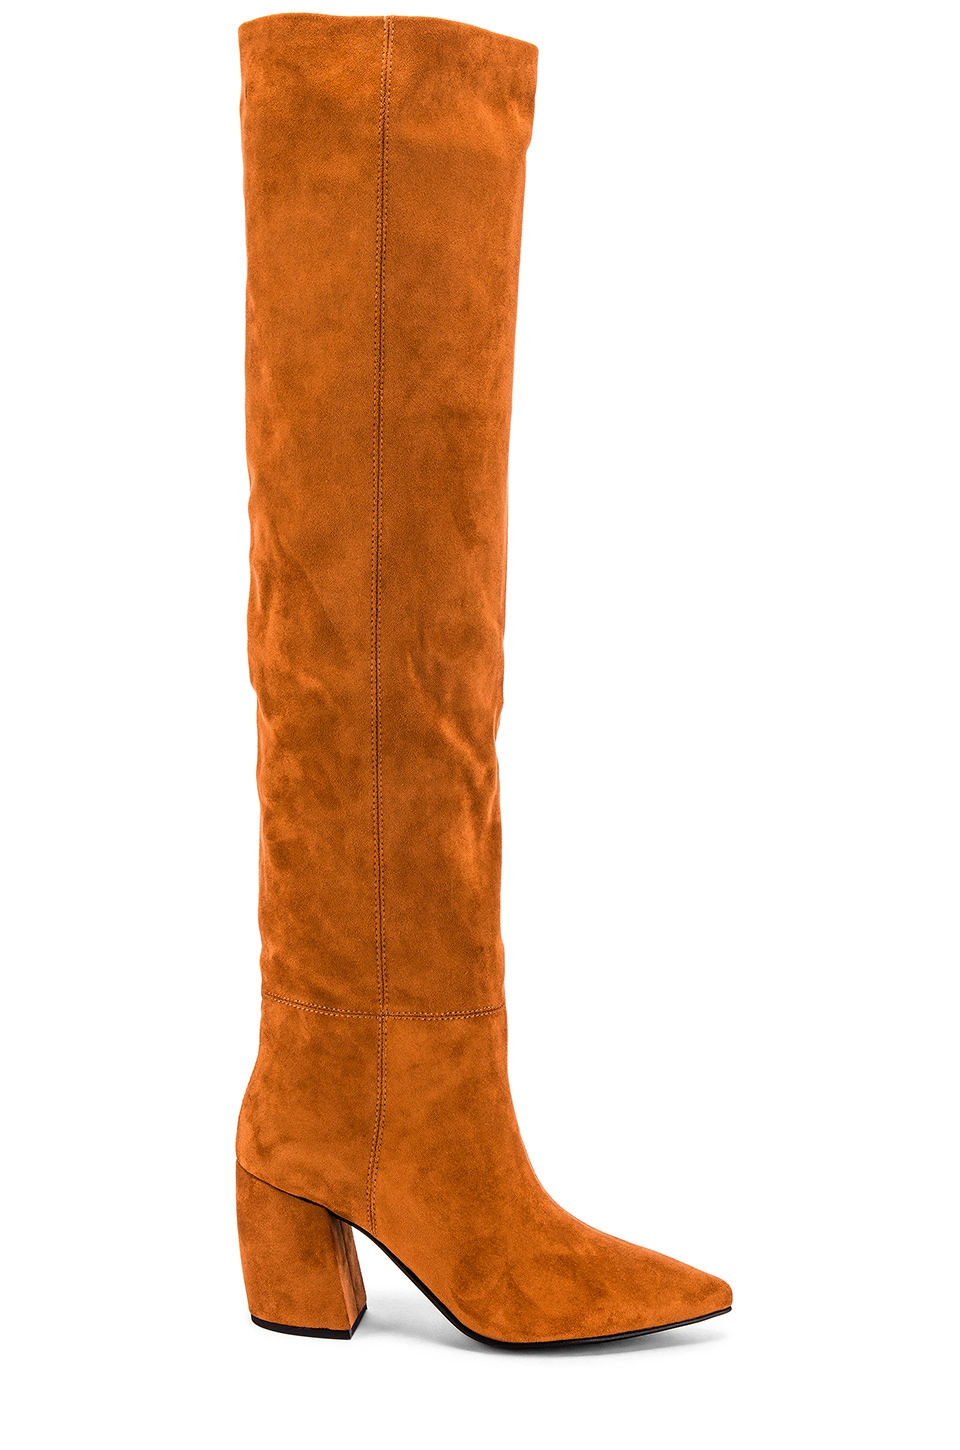 Jeffrey Campbell Final Slouch Boot in Tan Suede